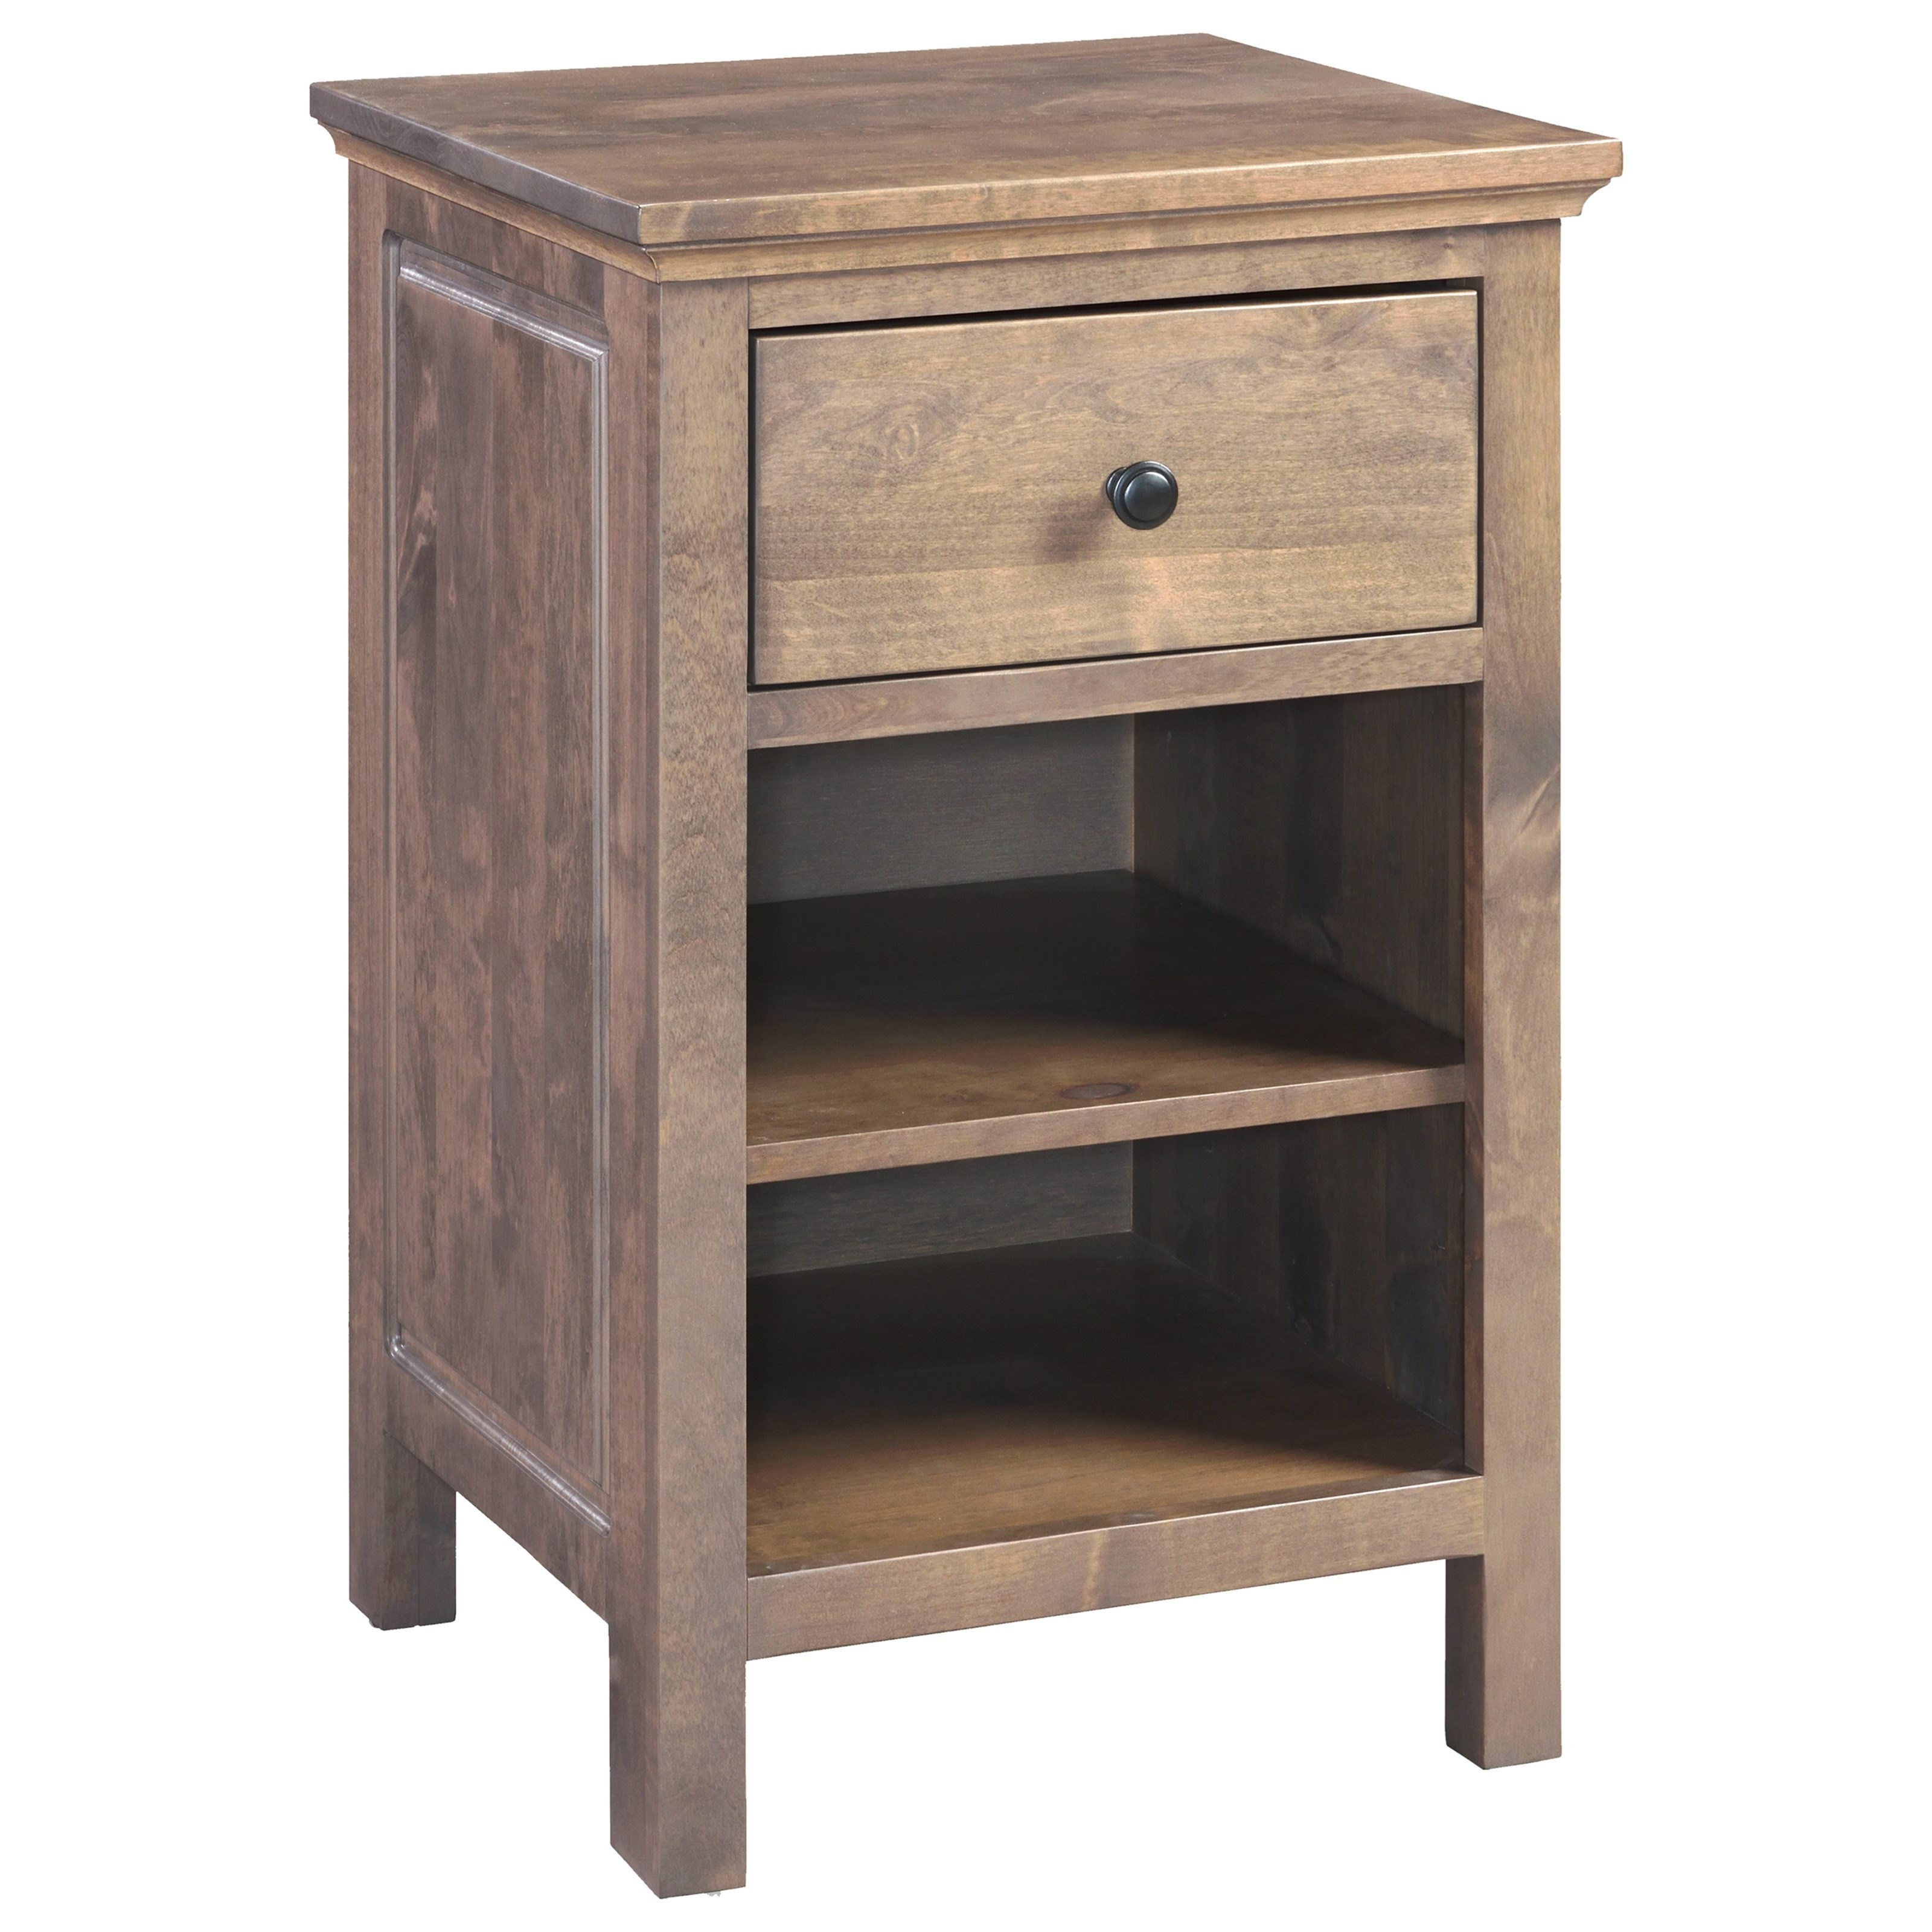 Alder Heritage 1-Drawer Night Stand by Amish Traditions at Sprintz Furniture